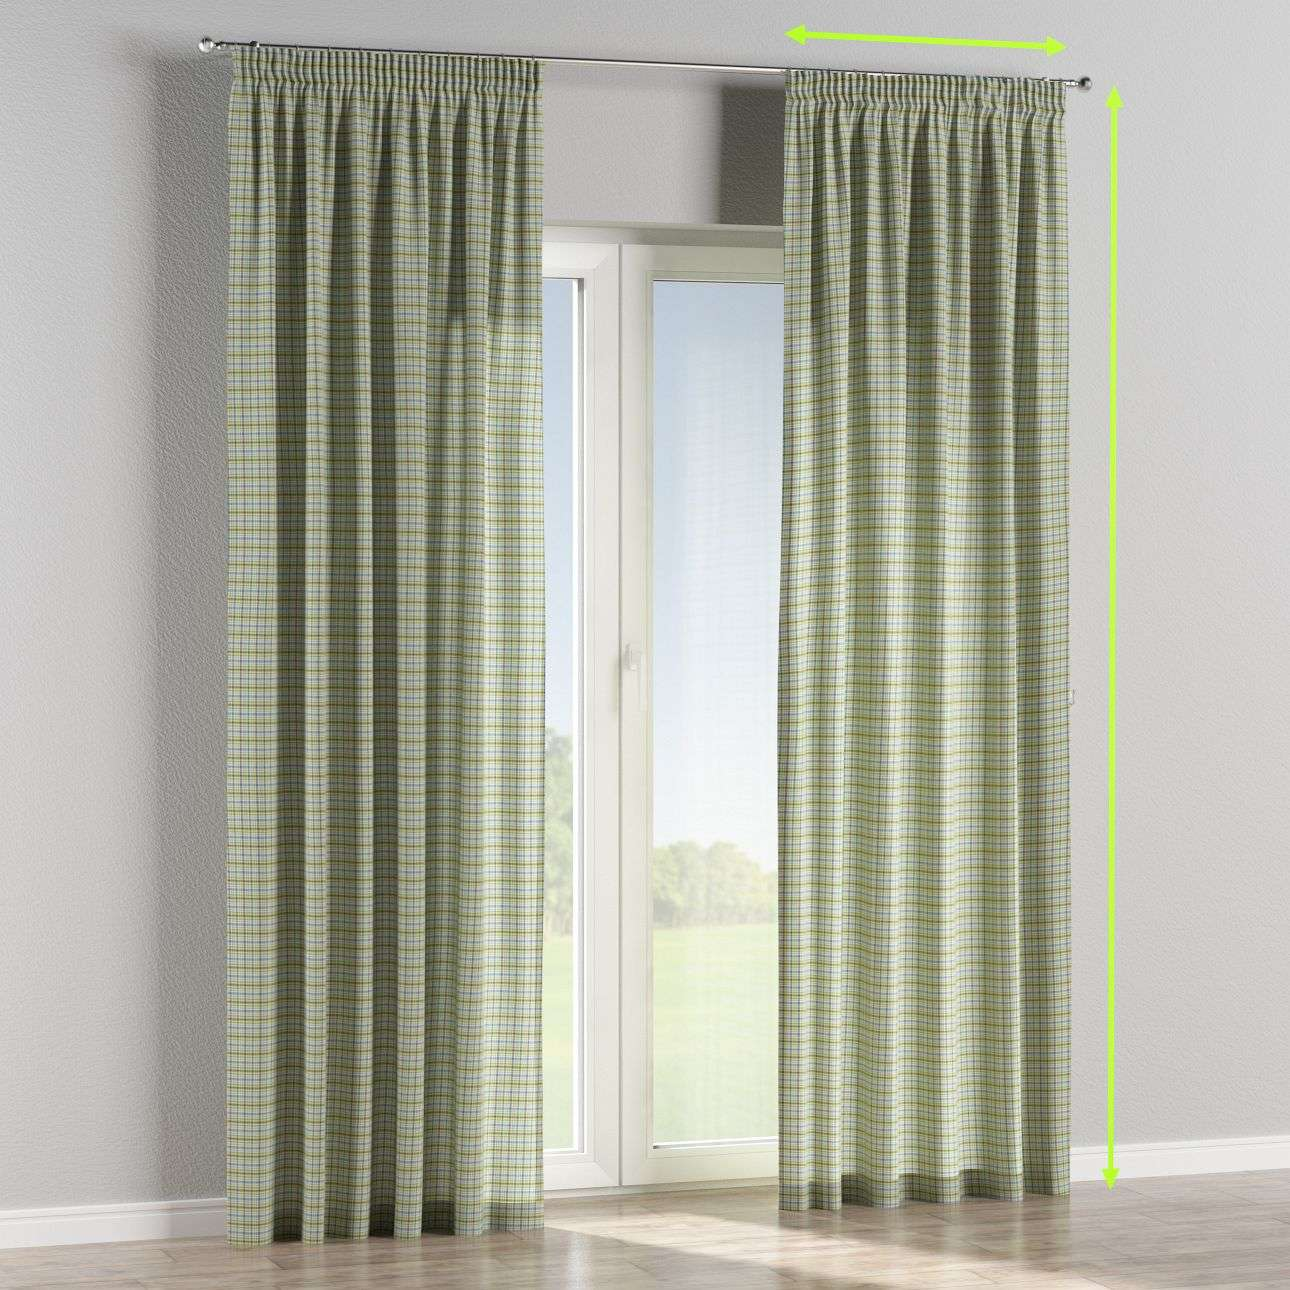 Pencil pleat lined curtains in collection Bristol, fabric: 126-69